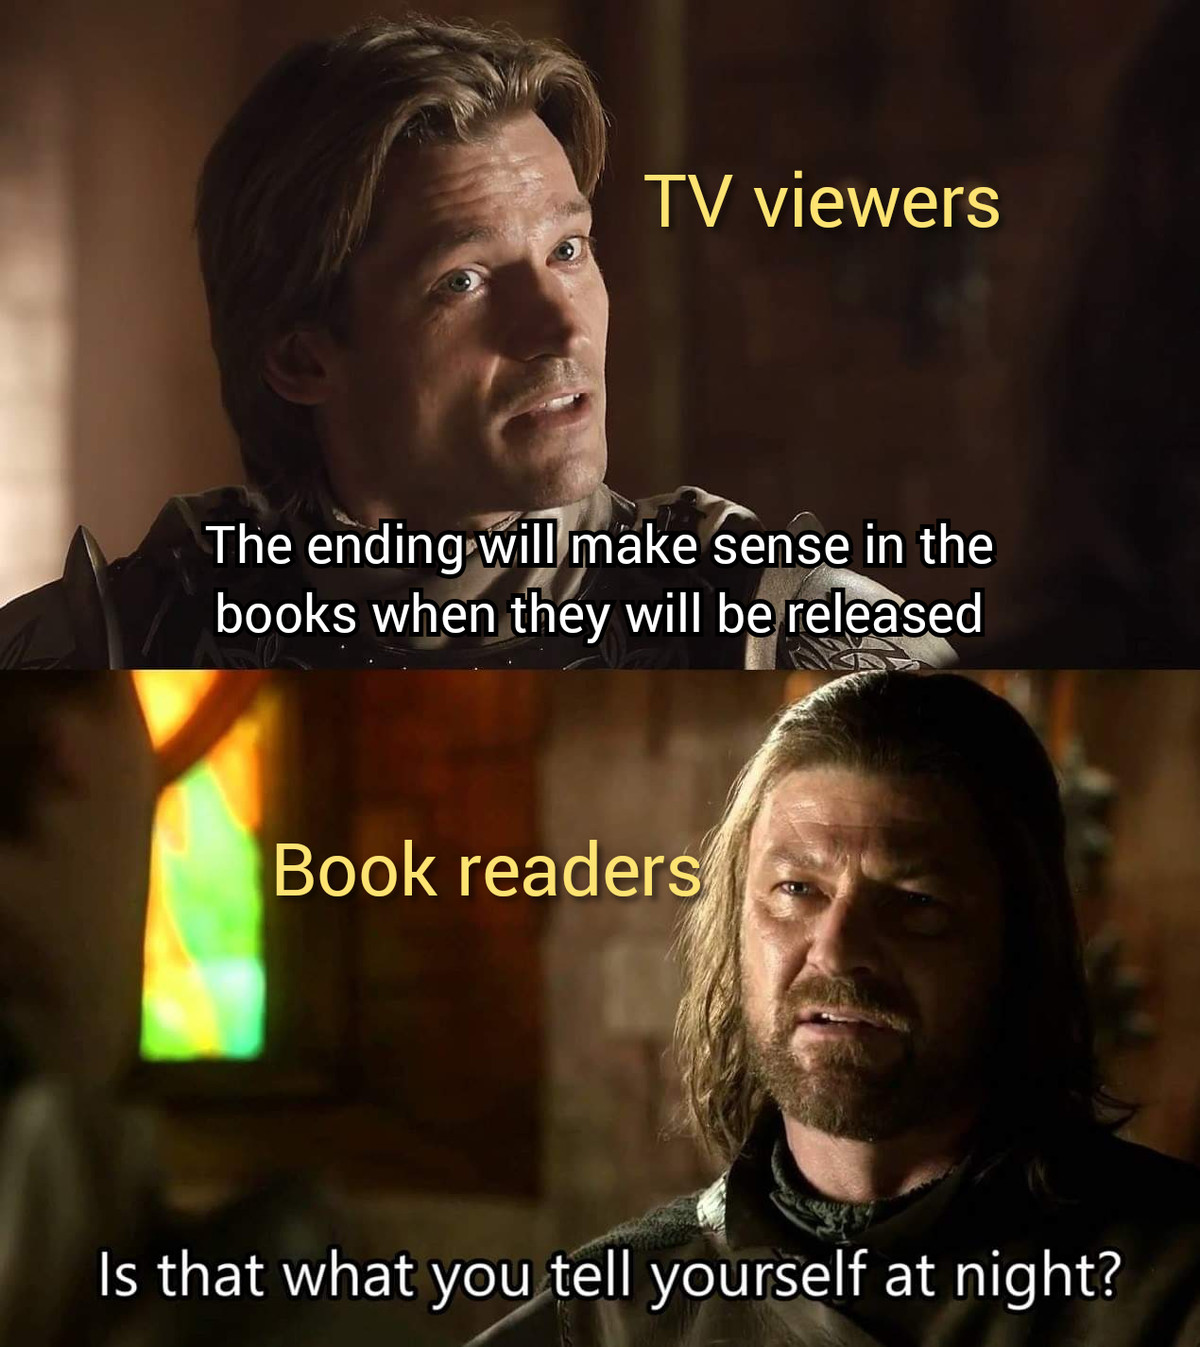 Thrones. .. See, the truth if what happens is that in dedication to his love for unexpected upset character death, Martin will release the next book and then die before any